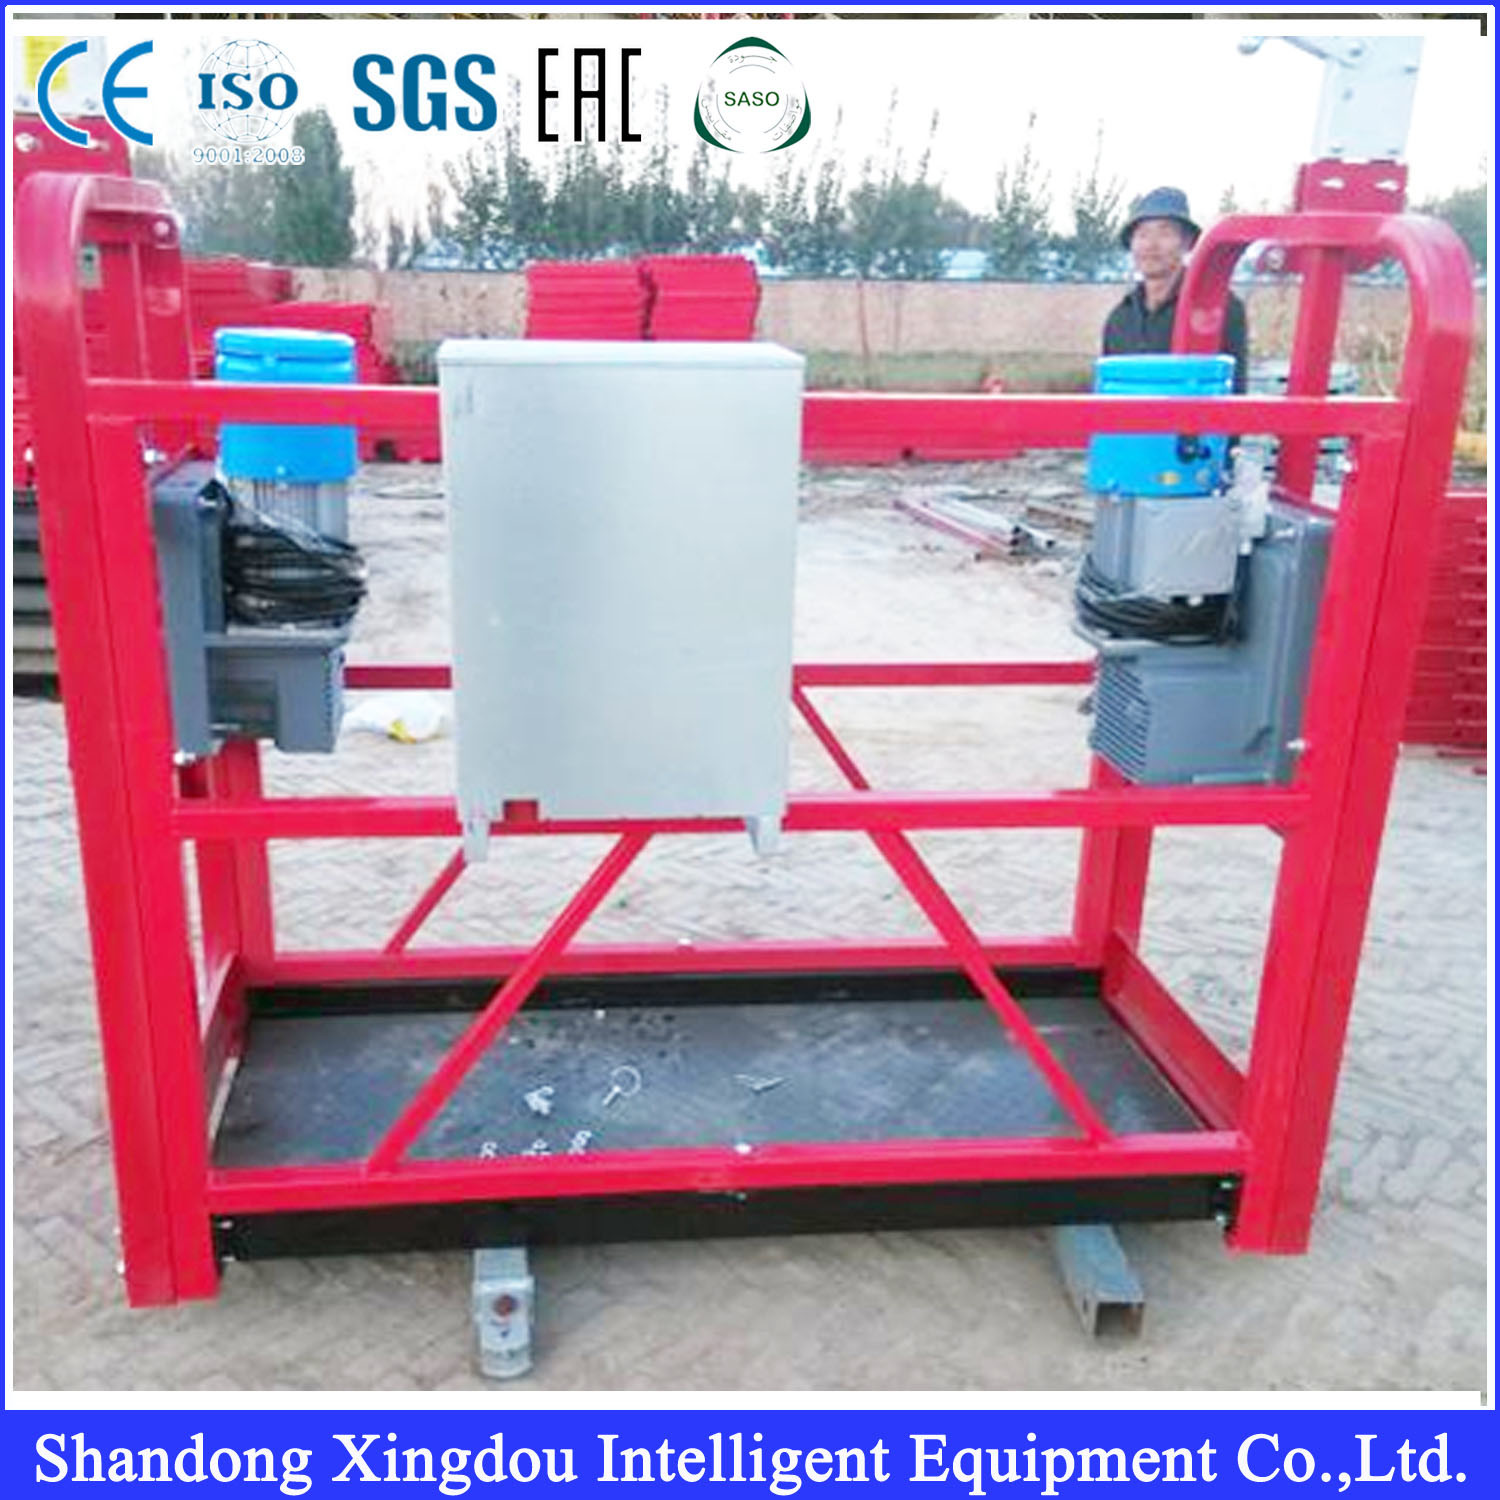 Zlp 630 Suspended Working Platform Used as Construction Gondola for Scaffolding Powered Cradle